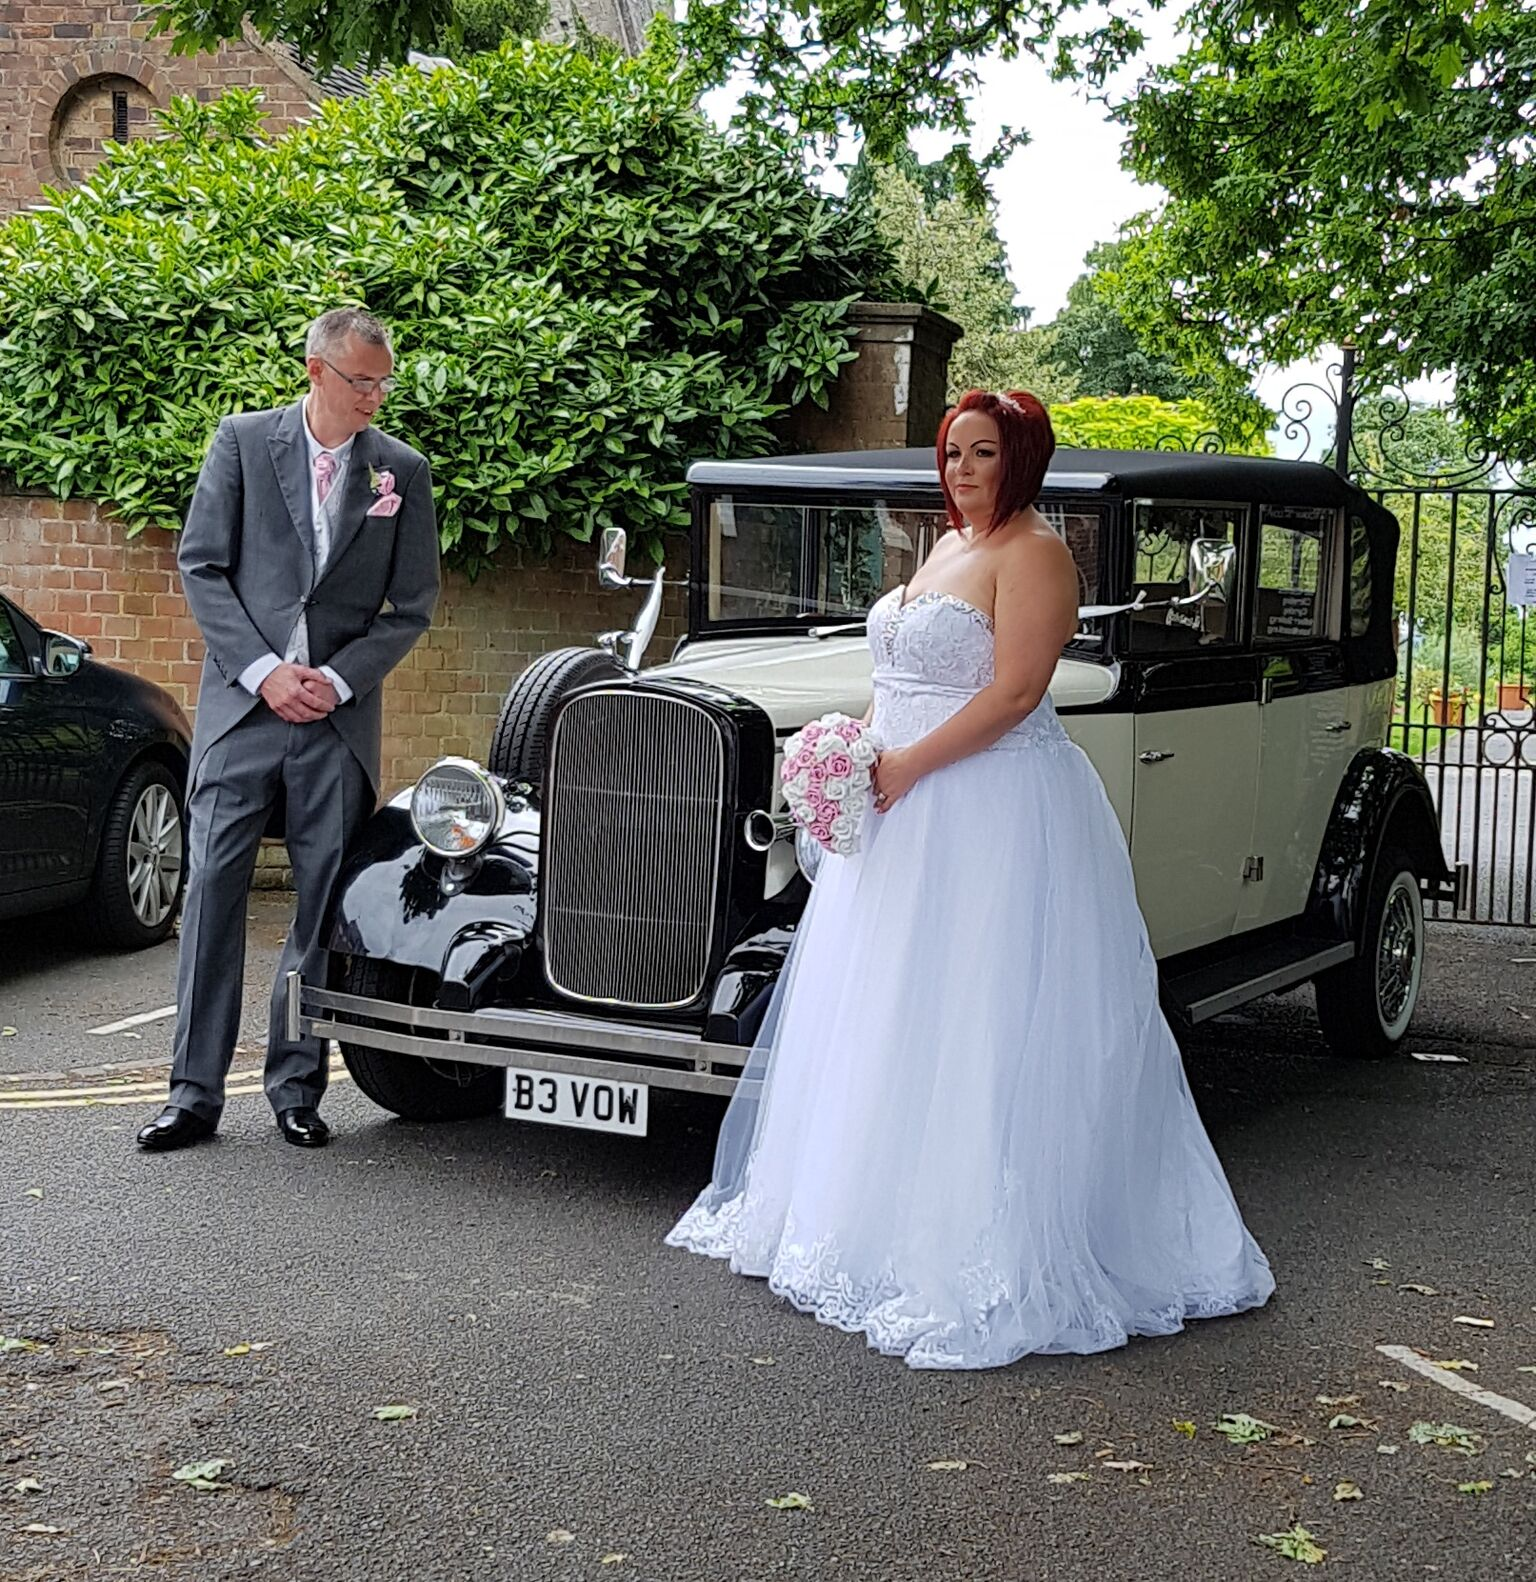 Cute wedding car hire.